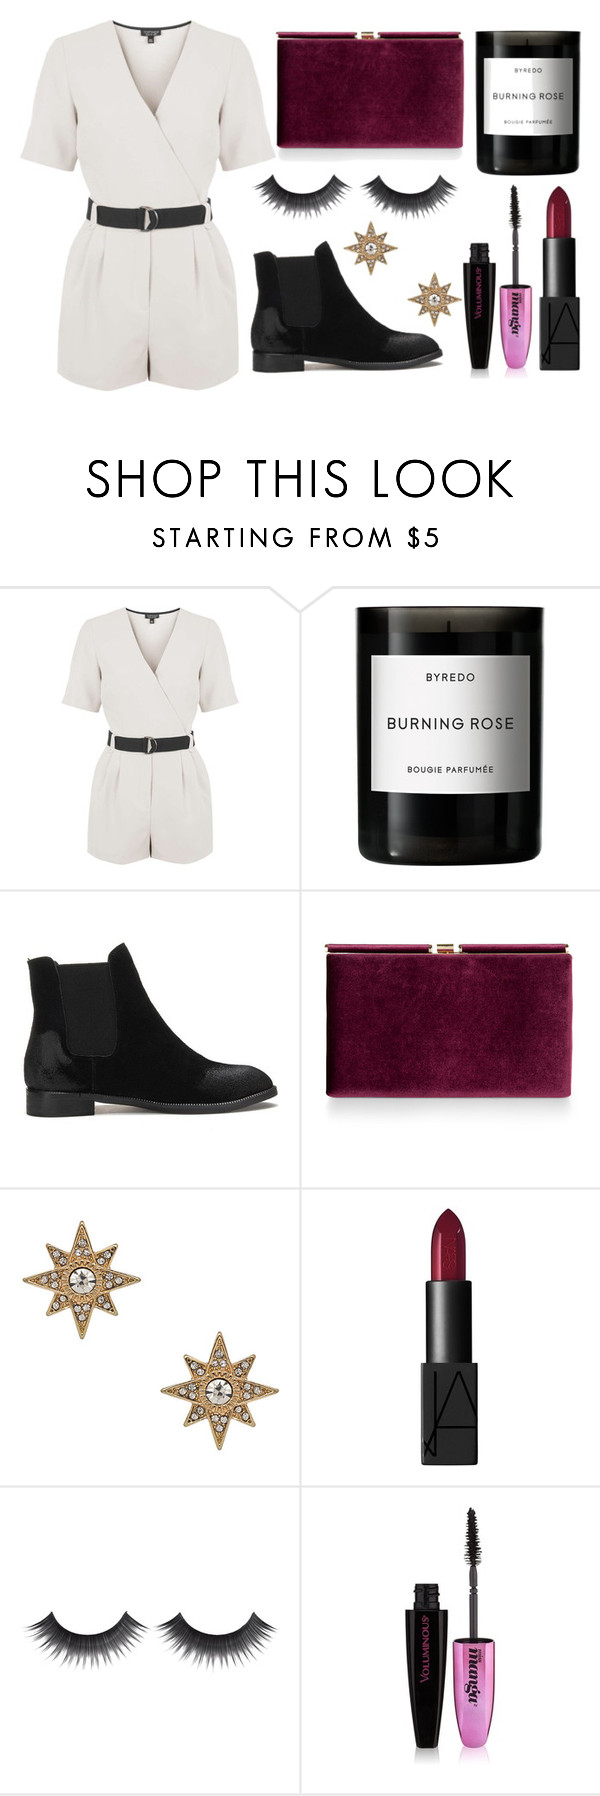 """""""Untitled #262"""" by fashionstruck15 ❤ liked on Polyvore featuring Topshop, Byredo, Monsoon, Blu Bijoux, NARS Cosmetics and L'Oréal Paris"""